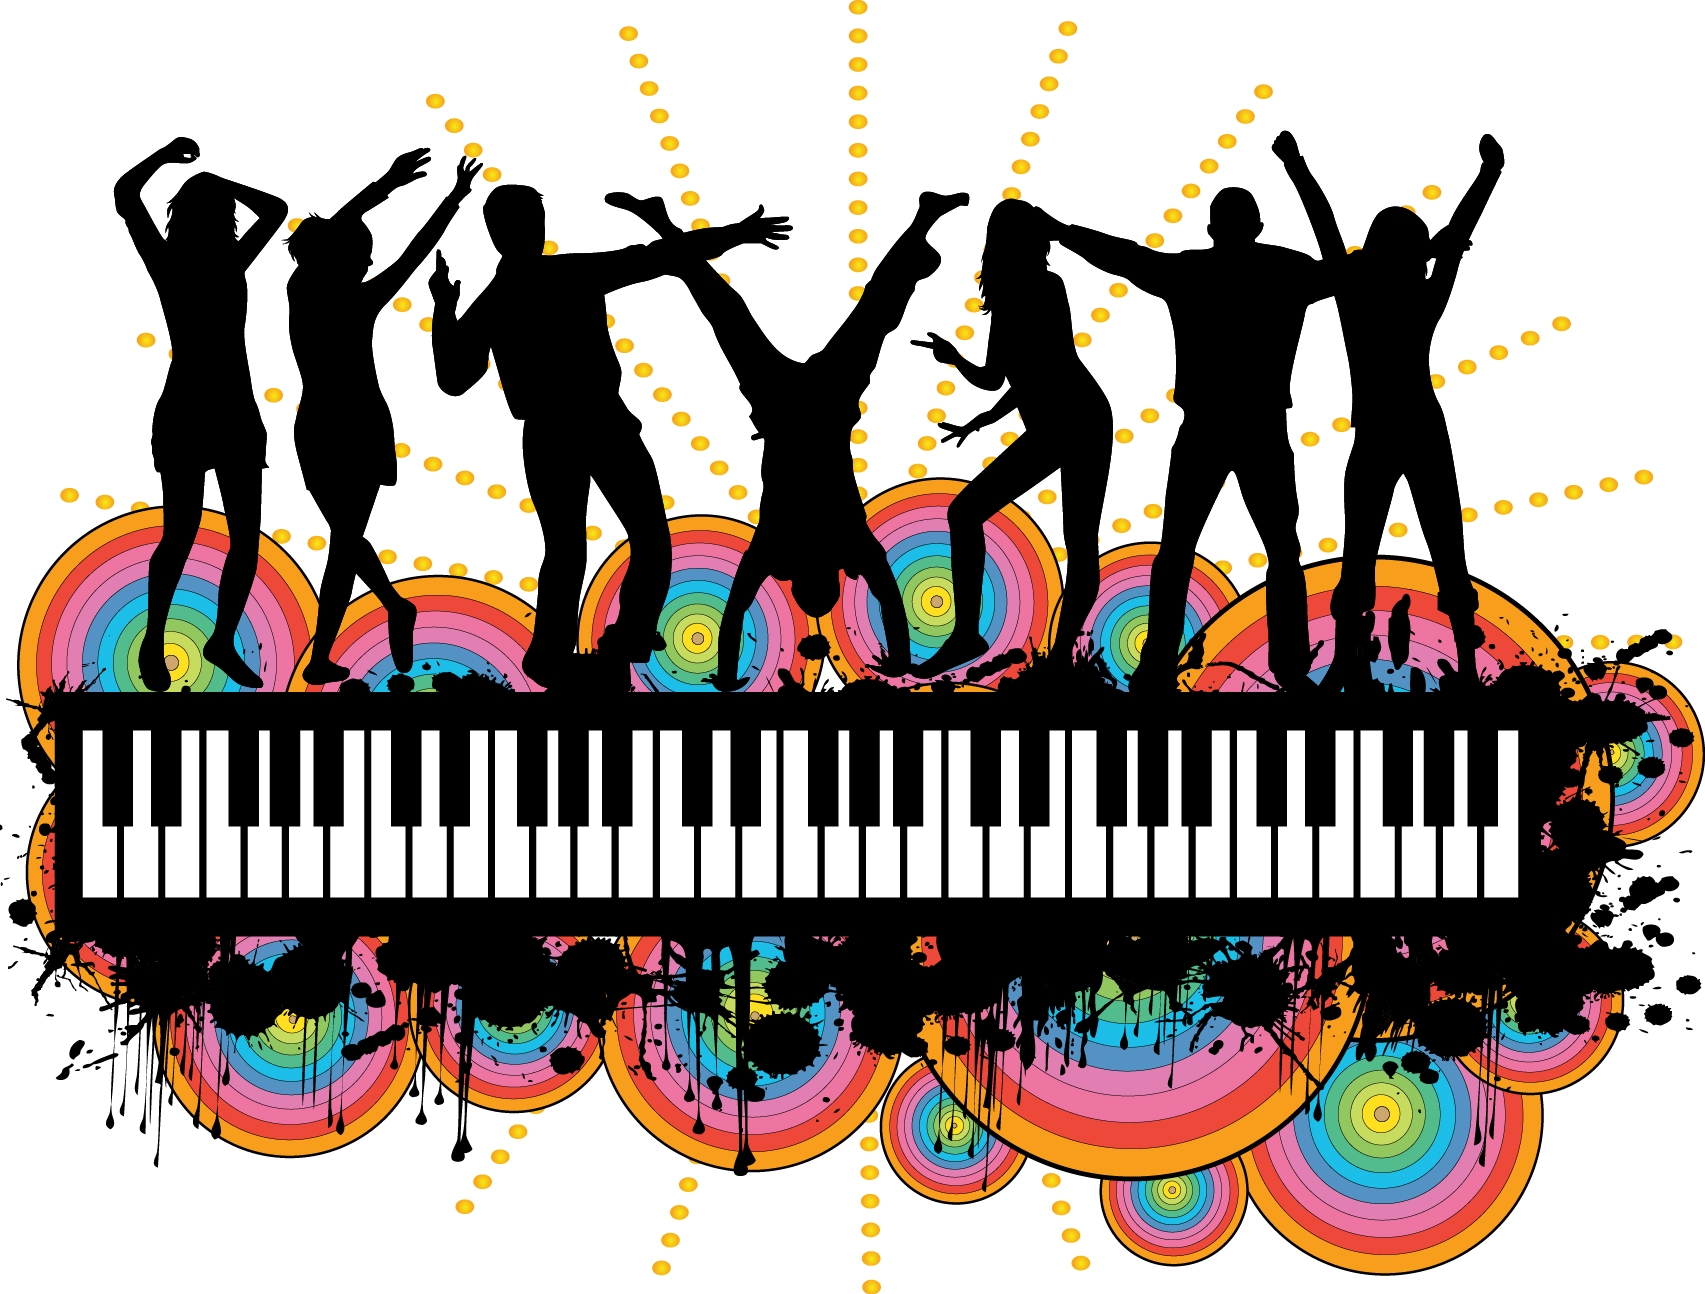 1705x1294 Party People Silhouette Clipart Panda Free Image Png. Snowjet.co